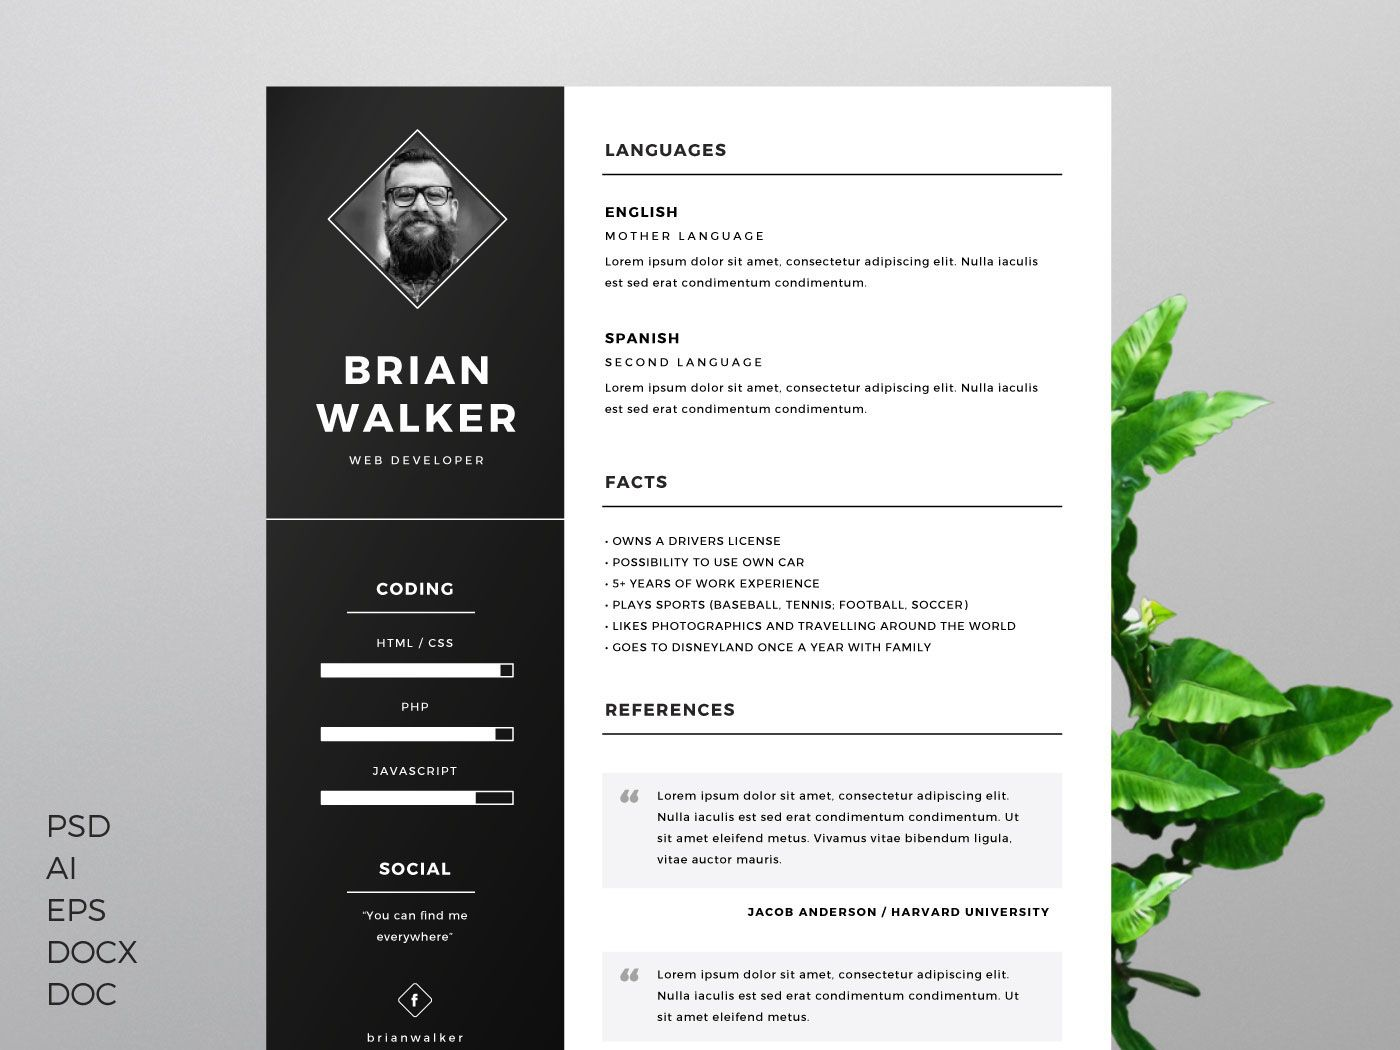 Check out this Behance project Free Resume